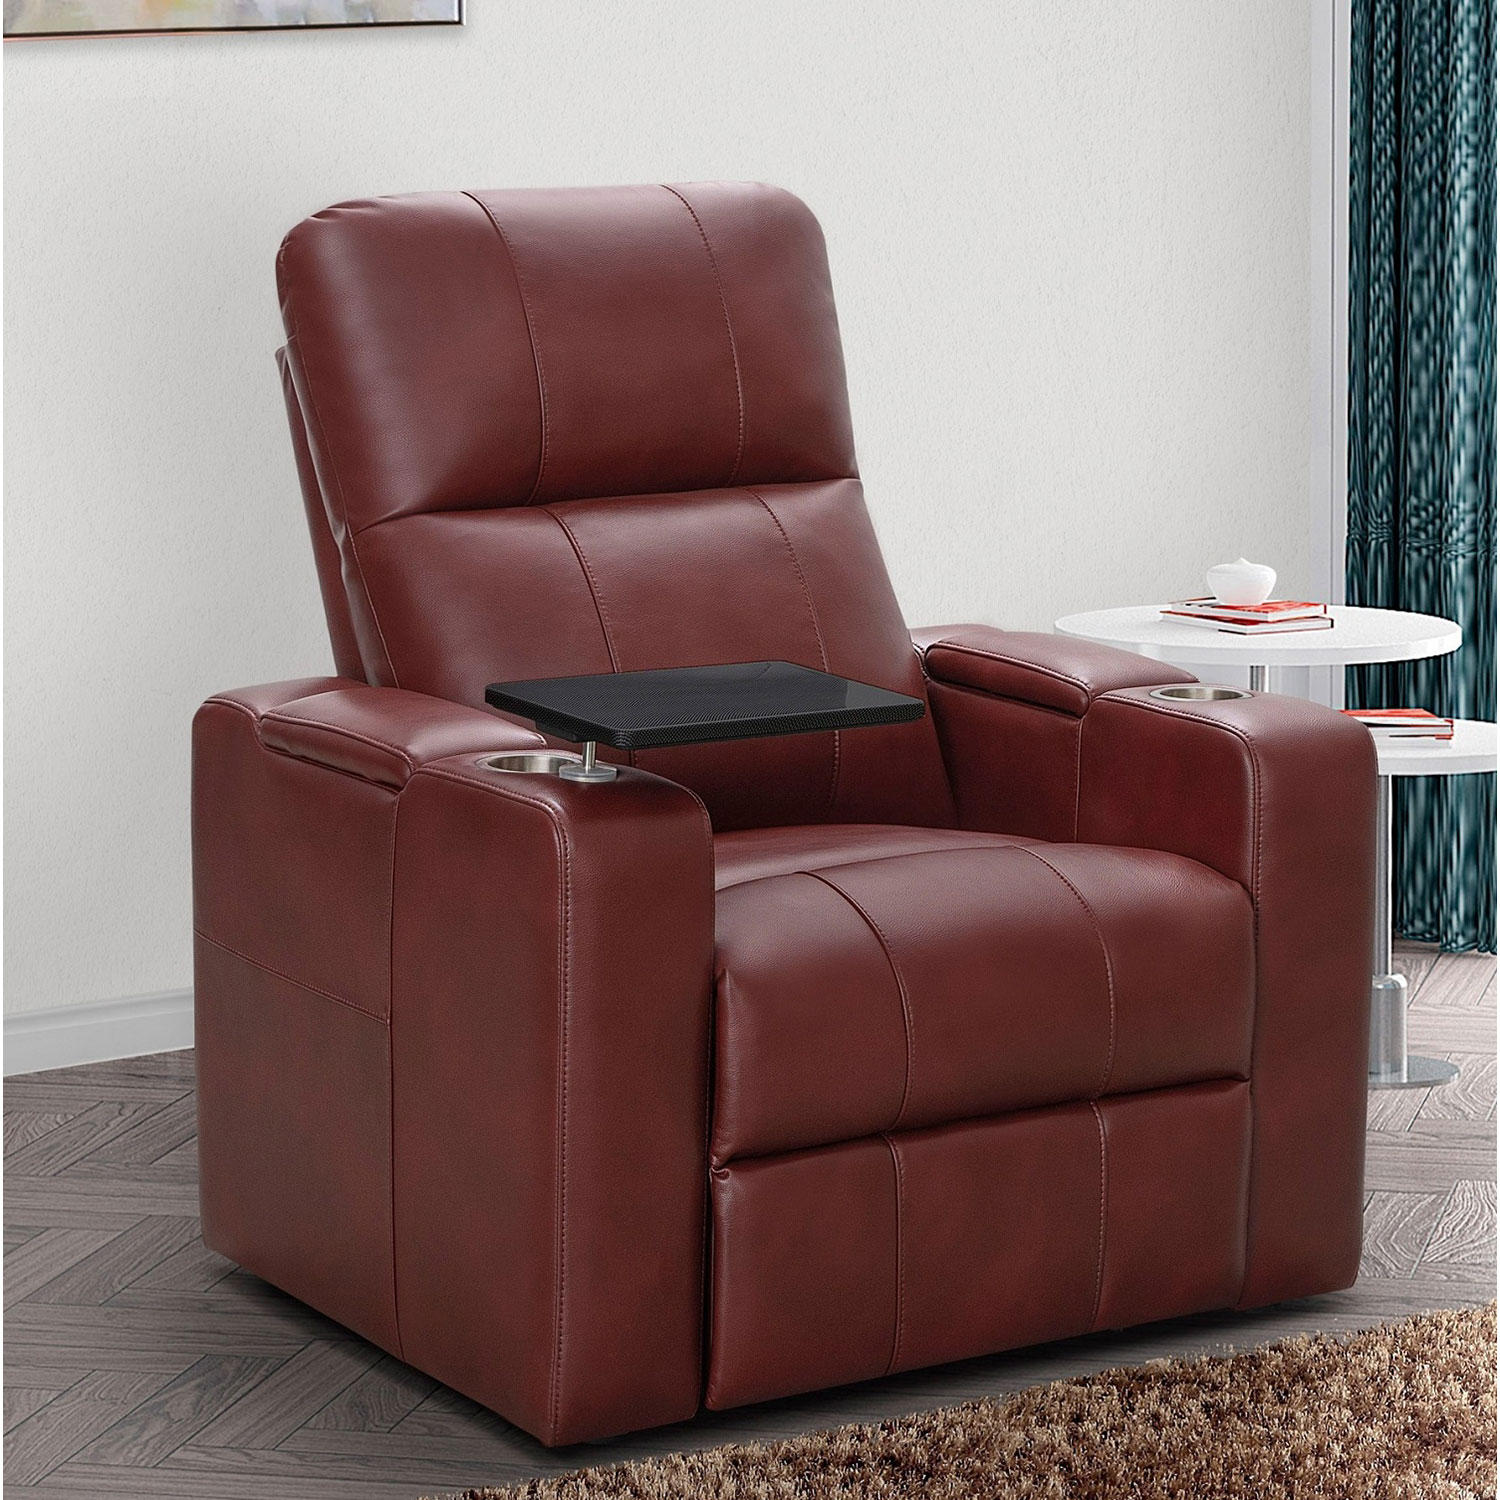 Abbyson Living Travis Power-Recline Home Theater Seating (Assorted Colors)